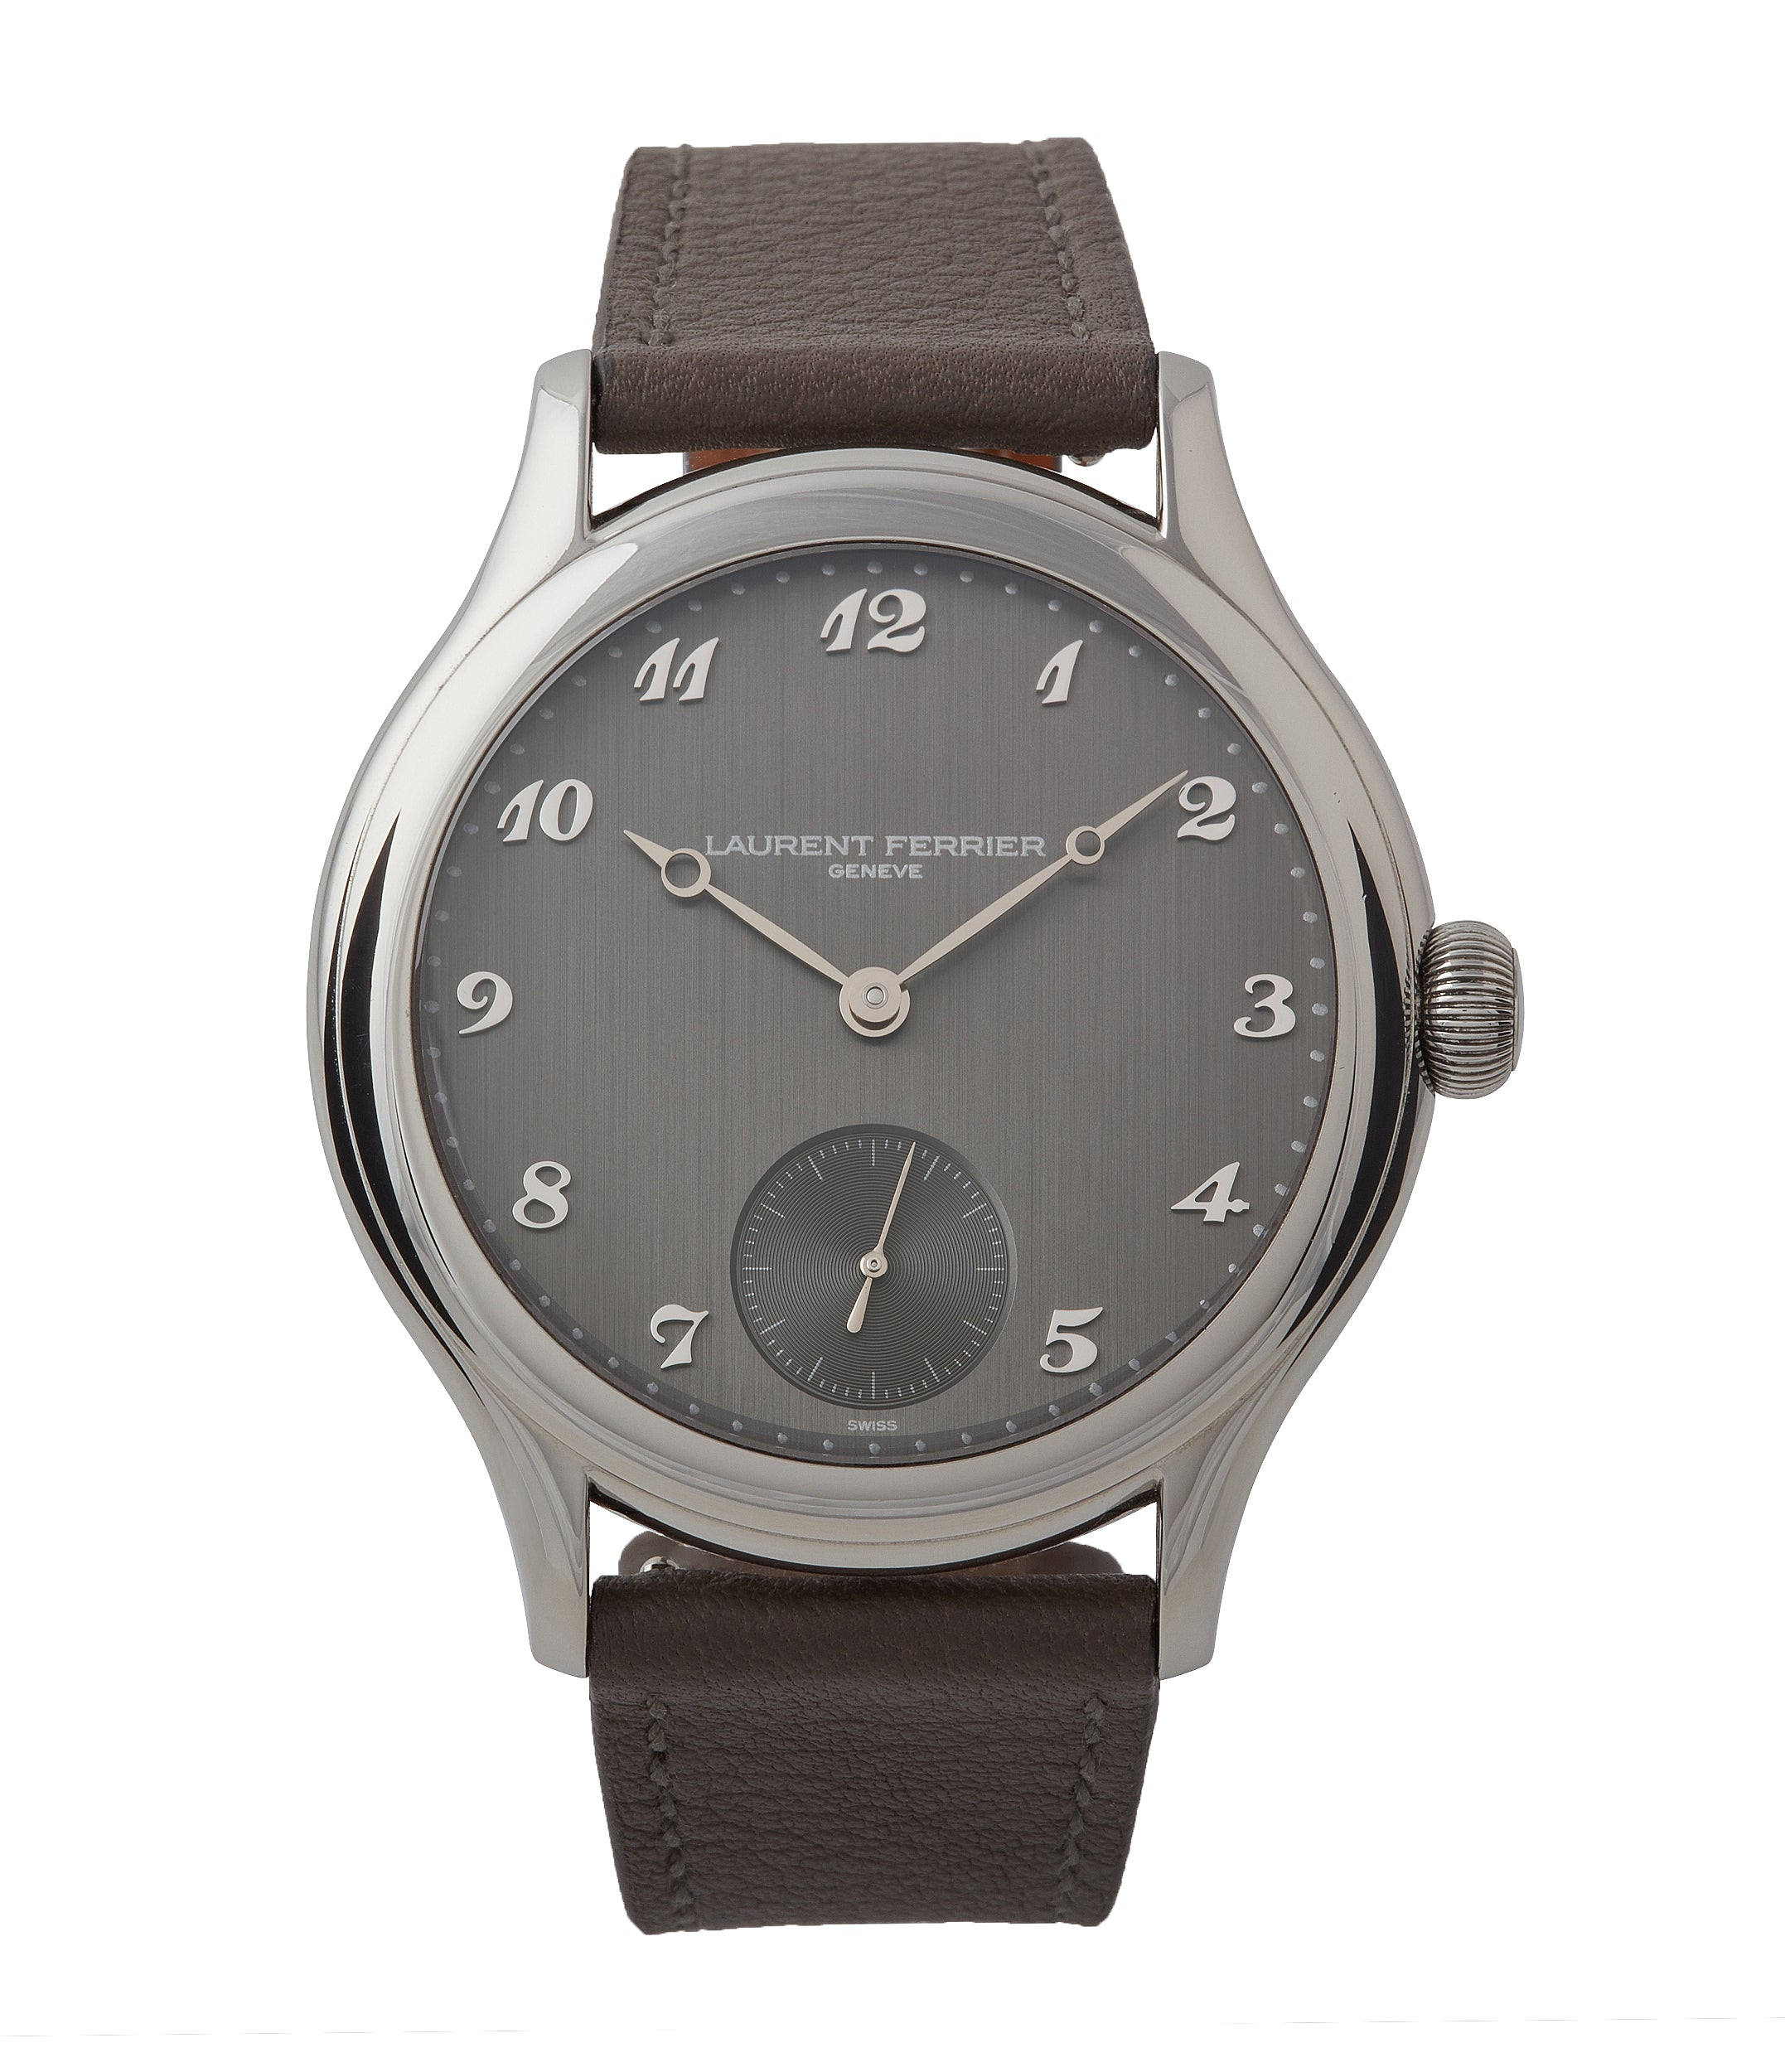 buy Laurent Ferrier Galet Micro-rotor steel grey brushed dial time-only dress watch for sale online at A Collected Man London UK specialist of independent watchmakers